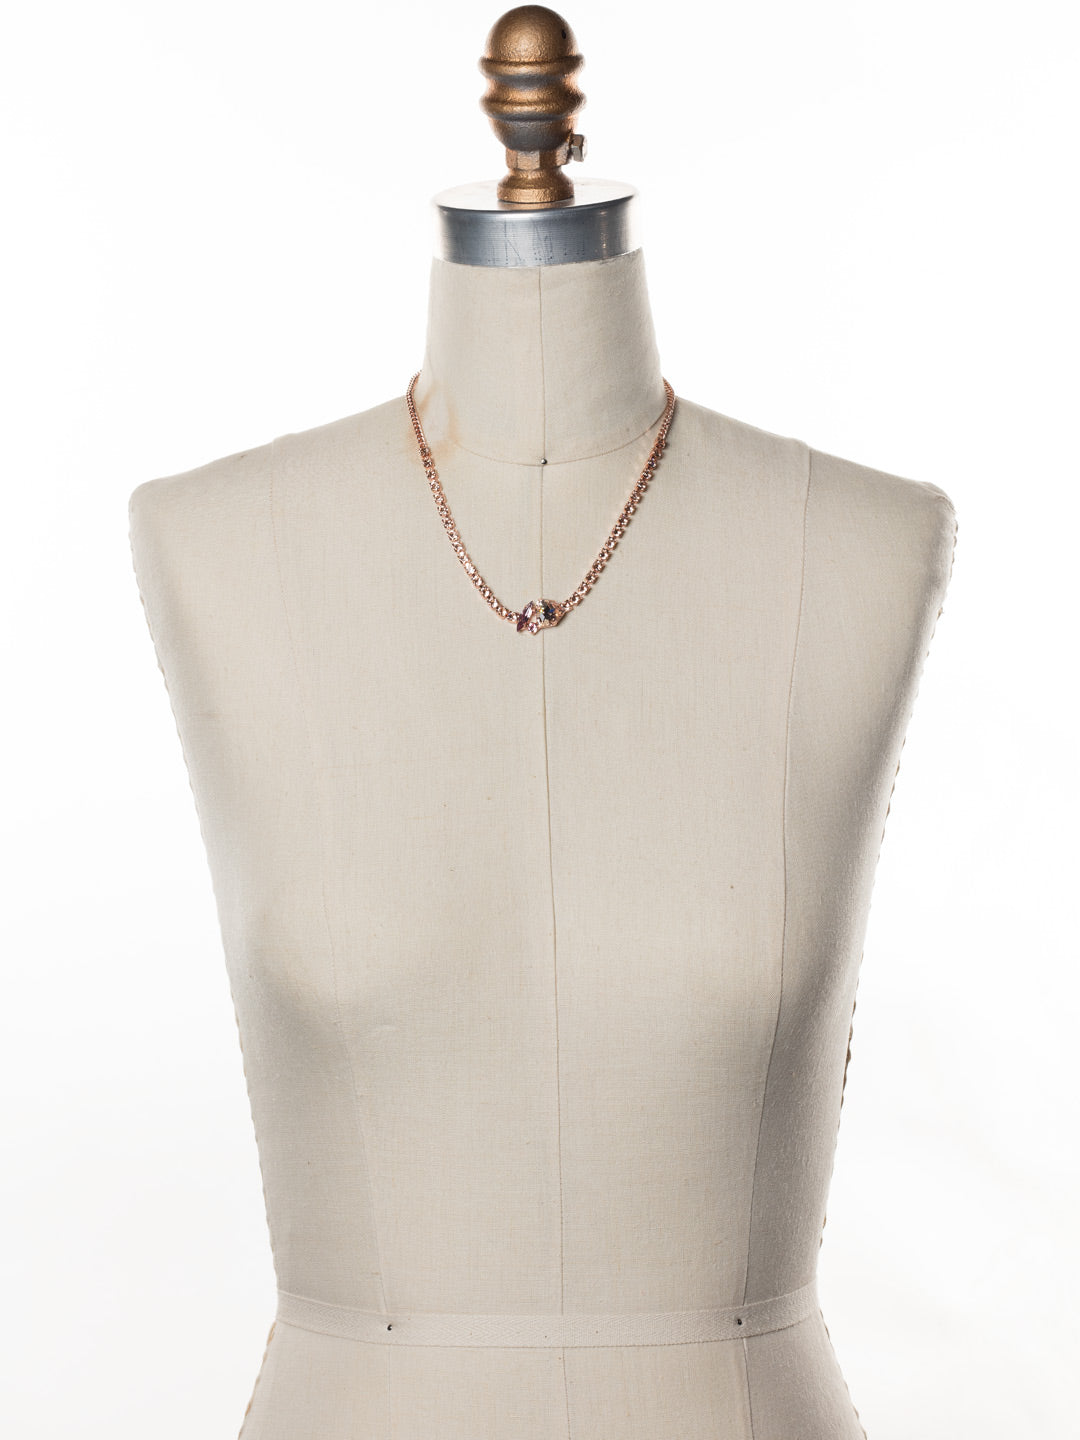 Leighton Tennis Necklace - NEN3RGLVP